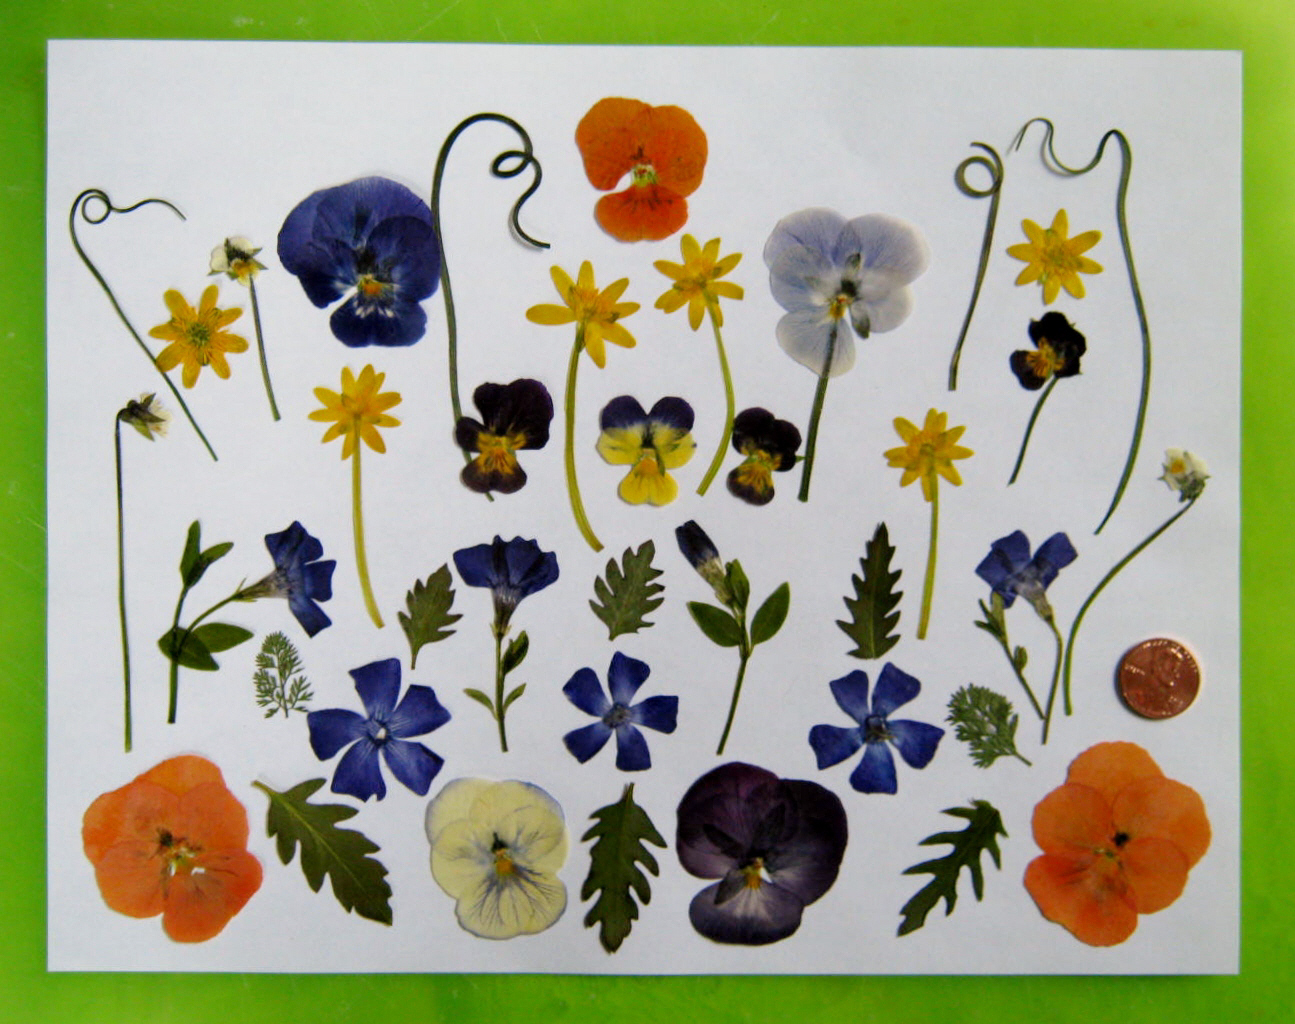 Pressed Flowers Tips For Pressing And Using Pressed Flowers Part